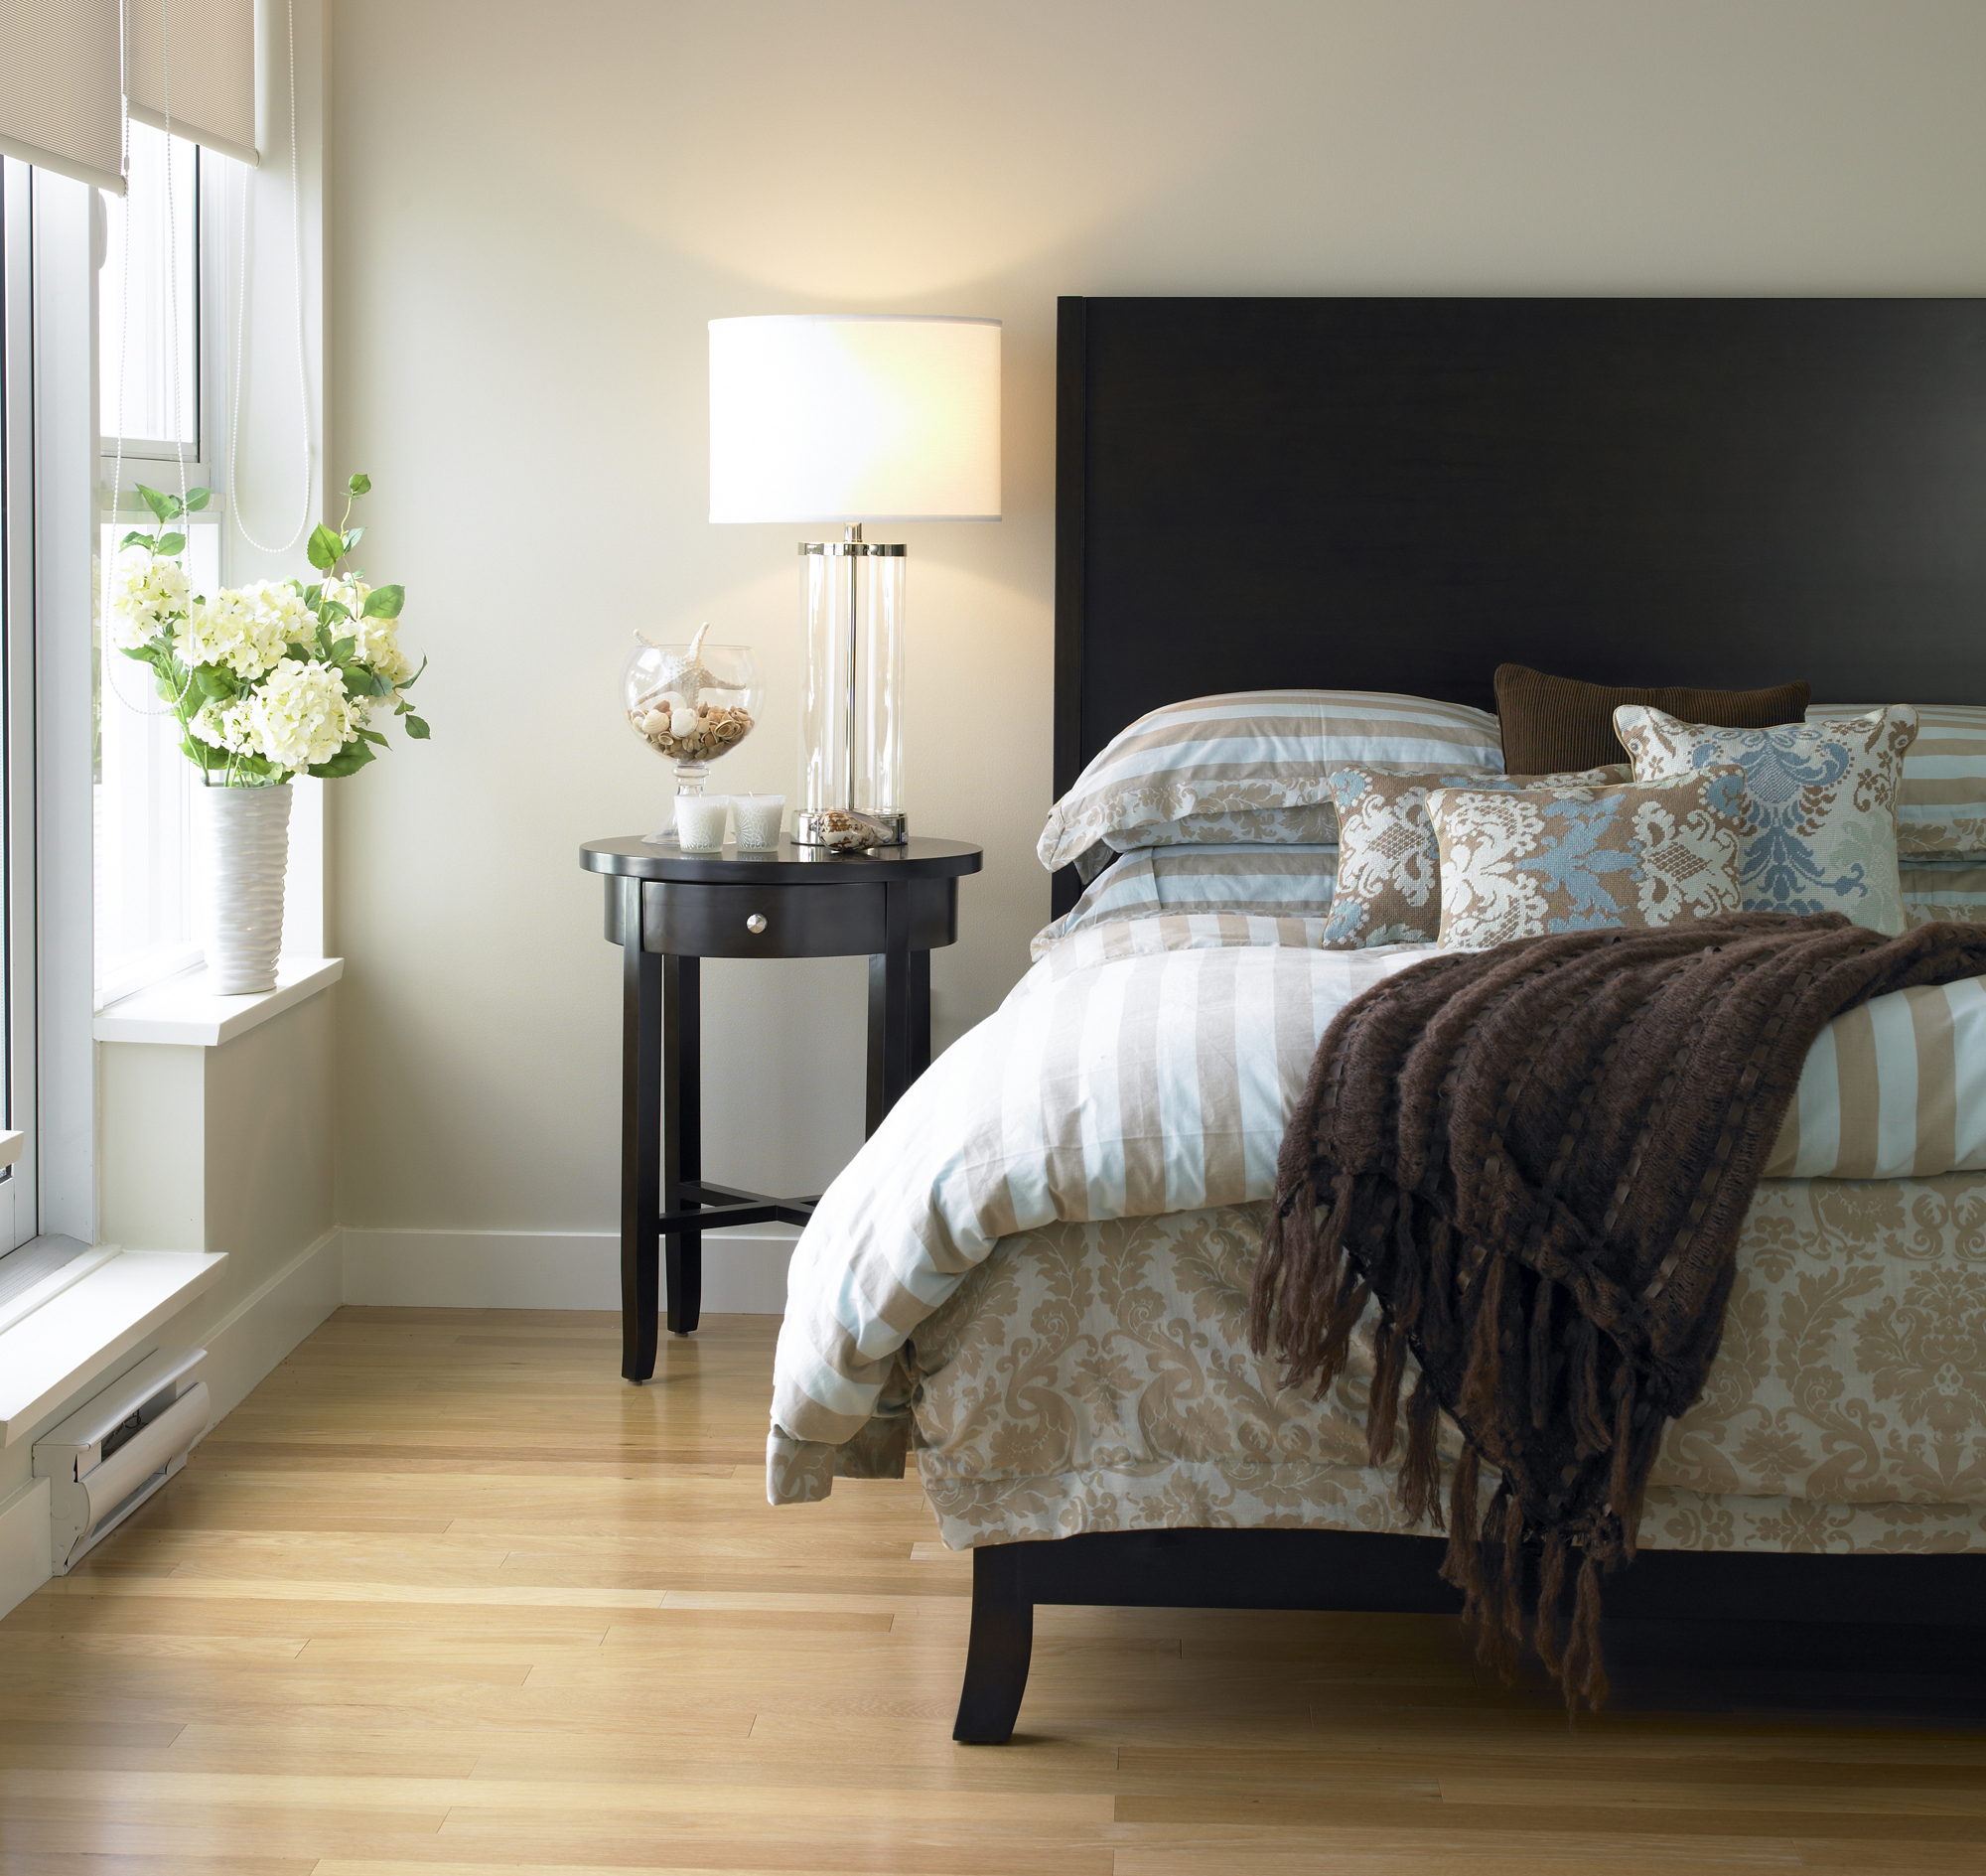 How To Make A Bed Your Guests Won't Want To Leave